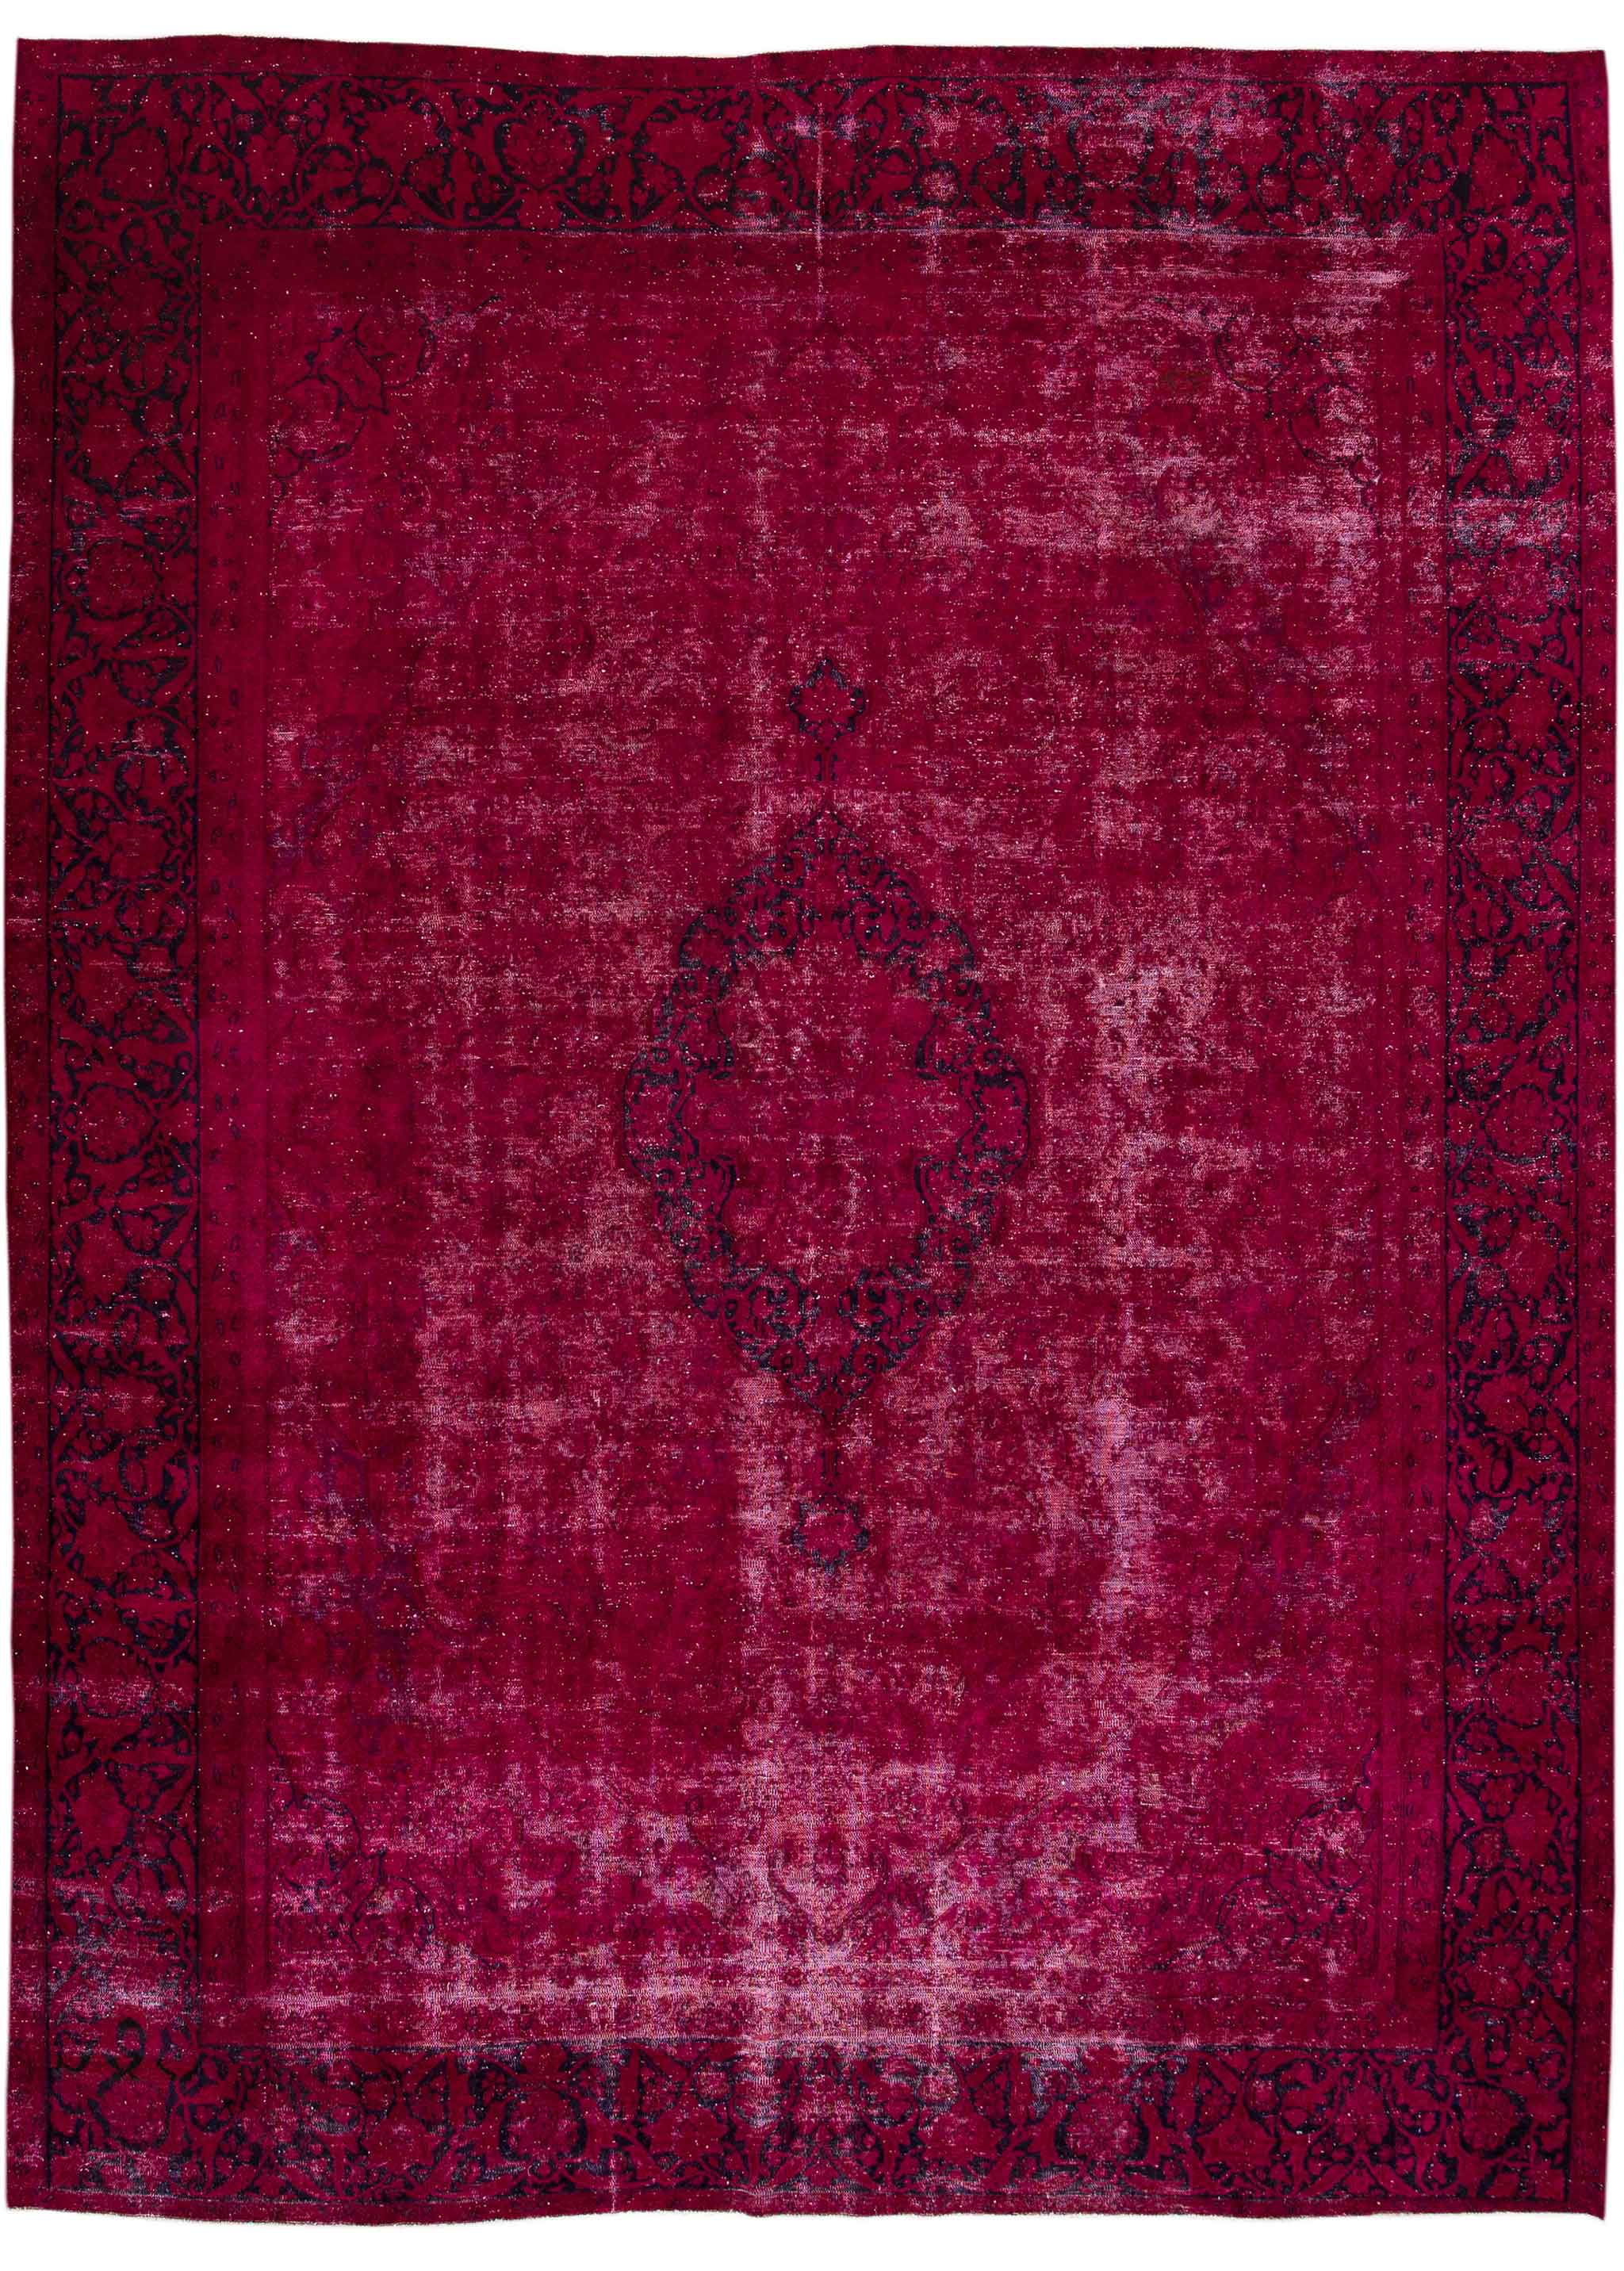 Overdyed carpet from Apadana | Image courtesy of Apadana